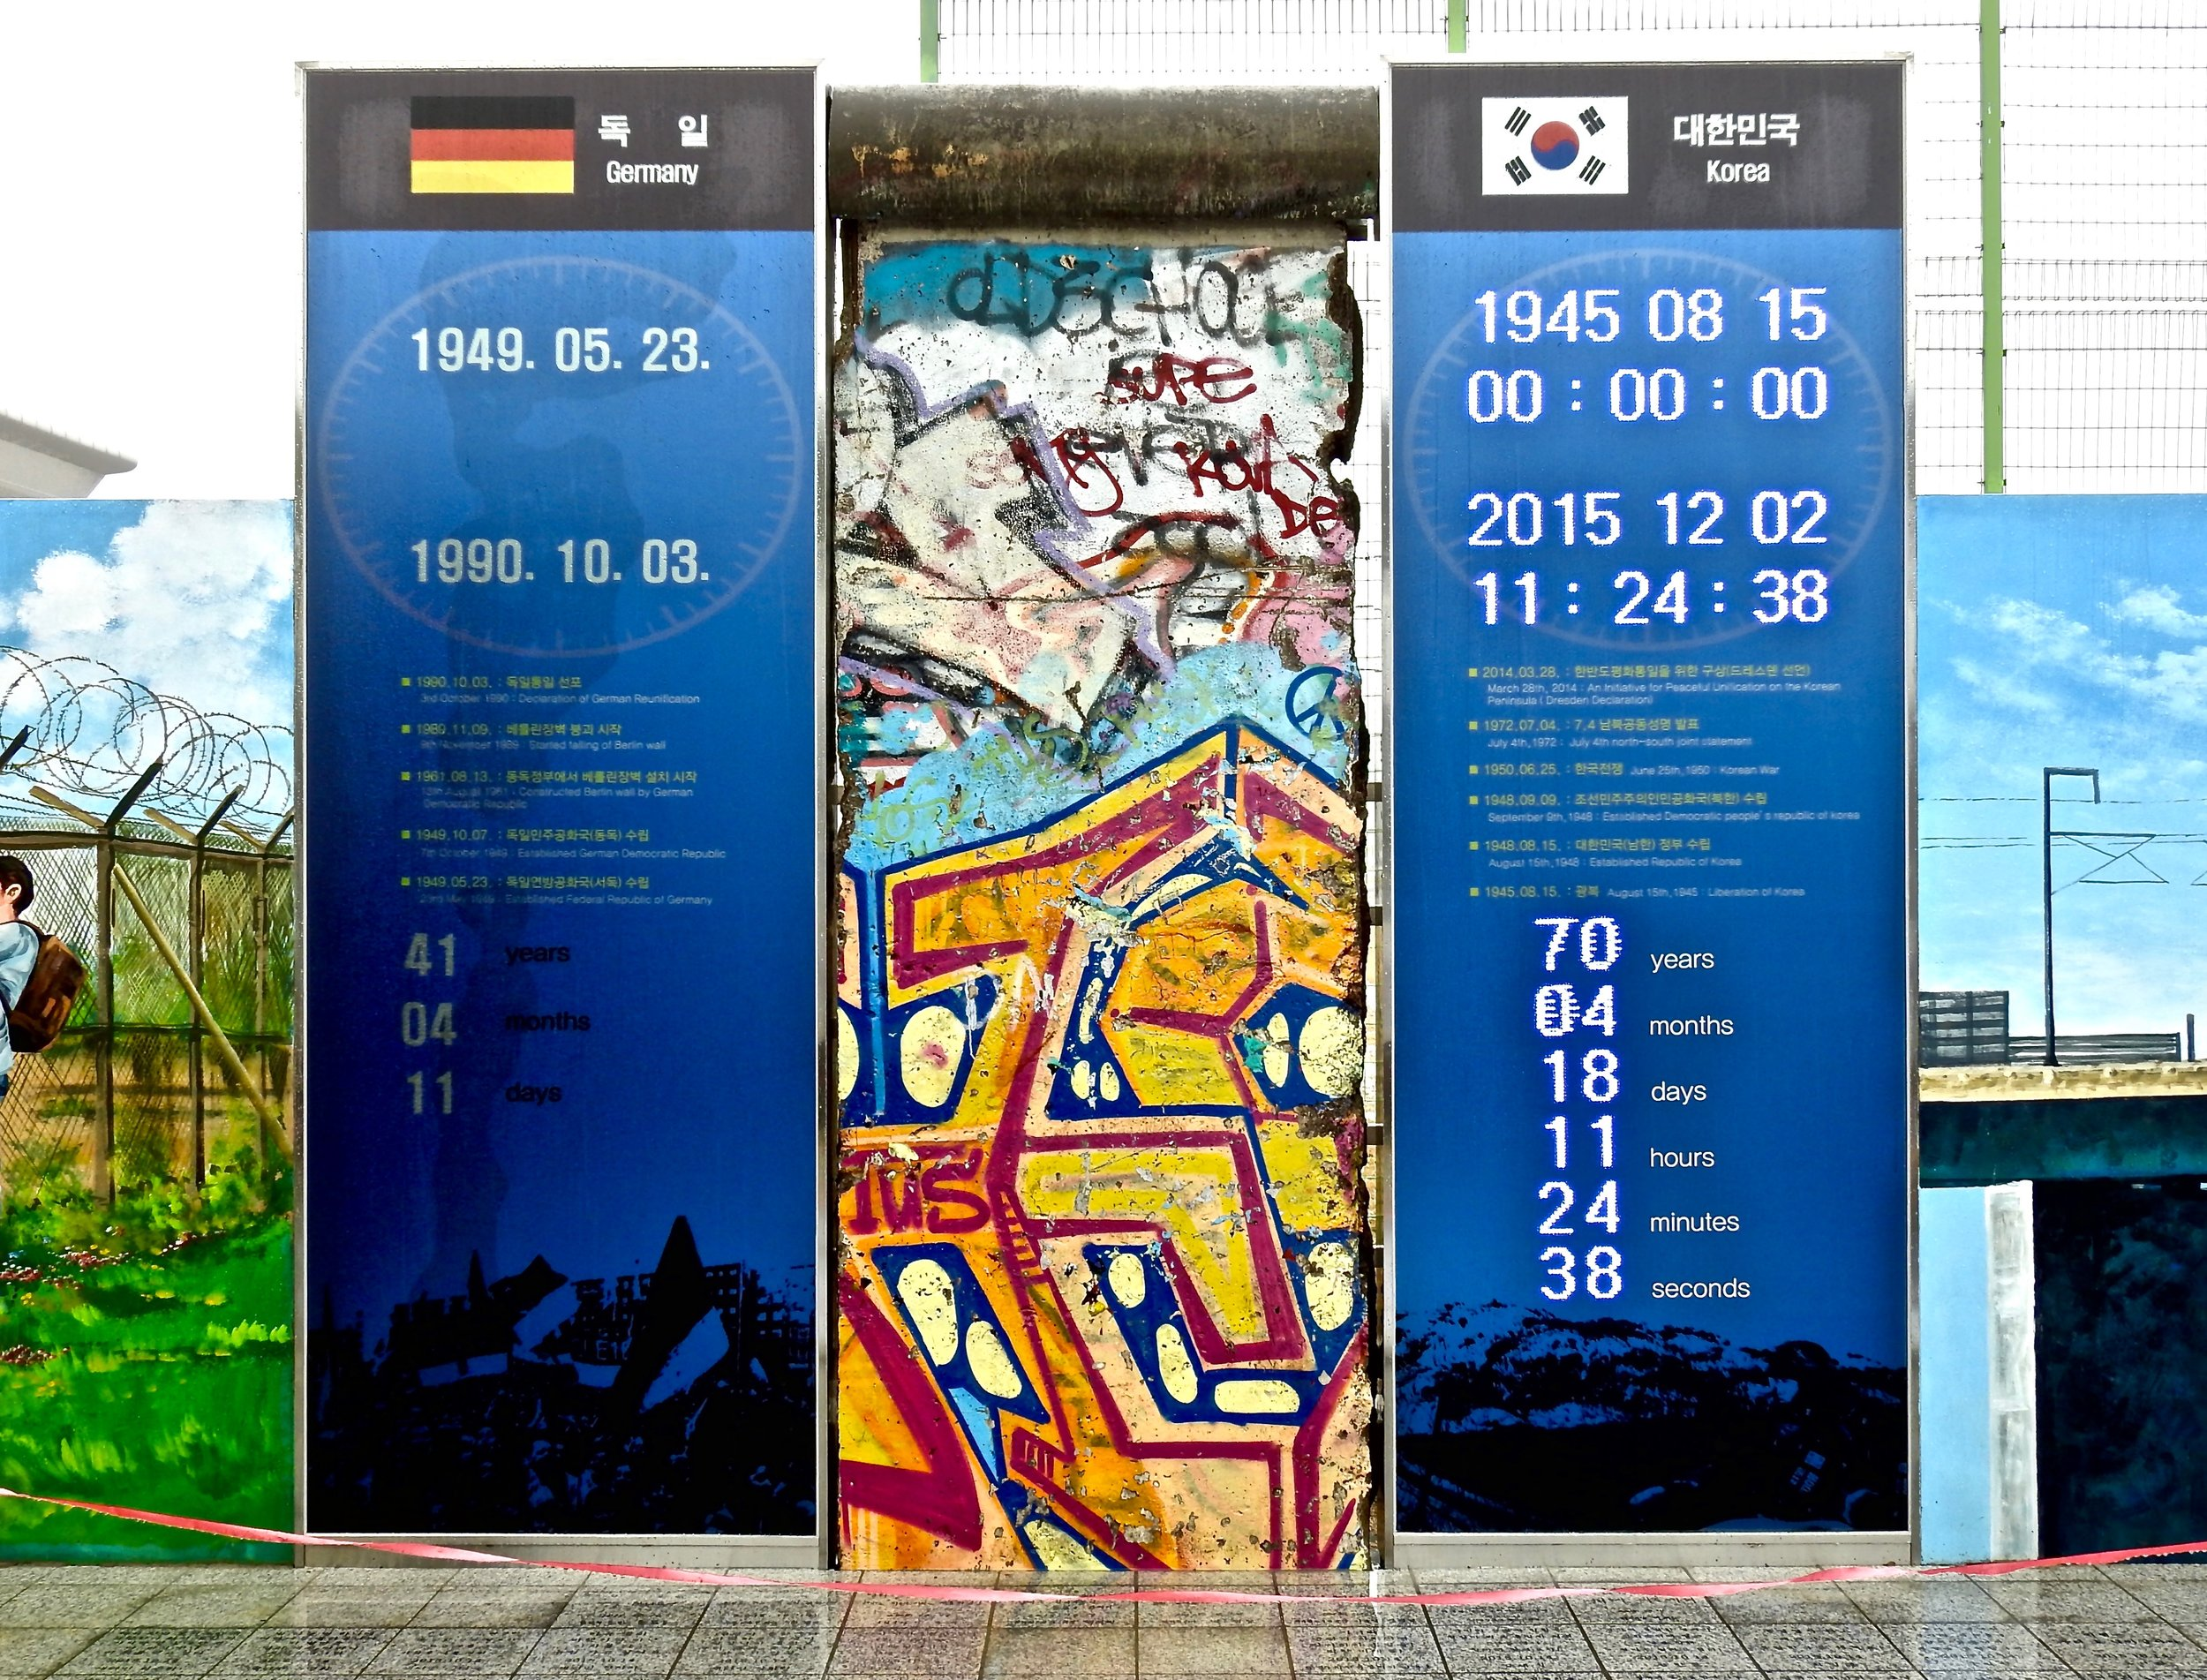 Signs at Dorasan train station in northern South Korea: left stating how long East and West Germany were separated, right digitally continuing to count the duration of the Korean division. In between the signs an original piece of the Berlin Wall. (C) Remko Tanis